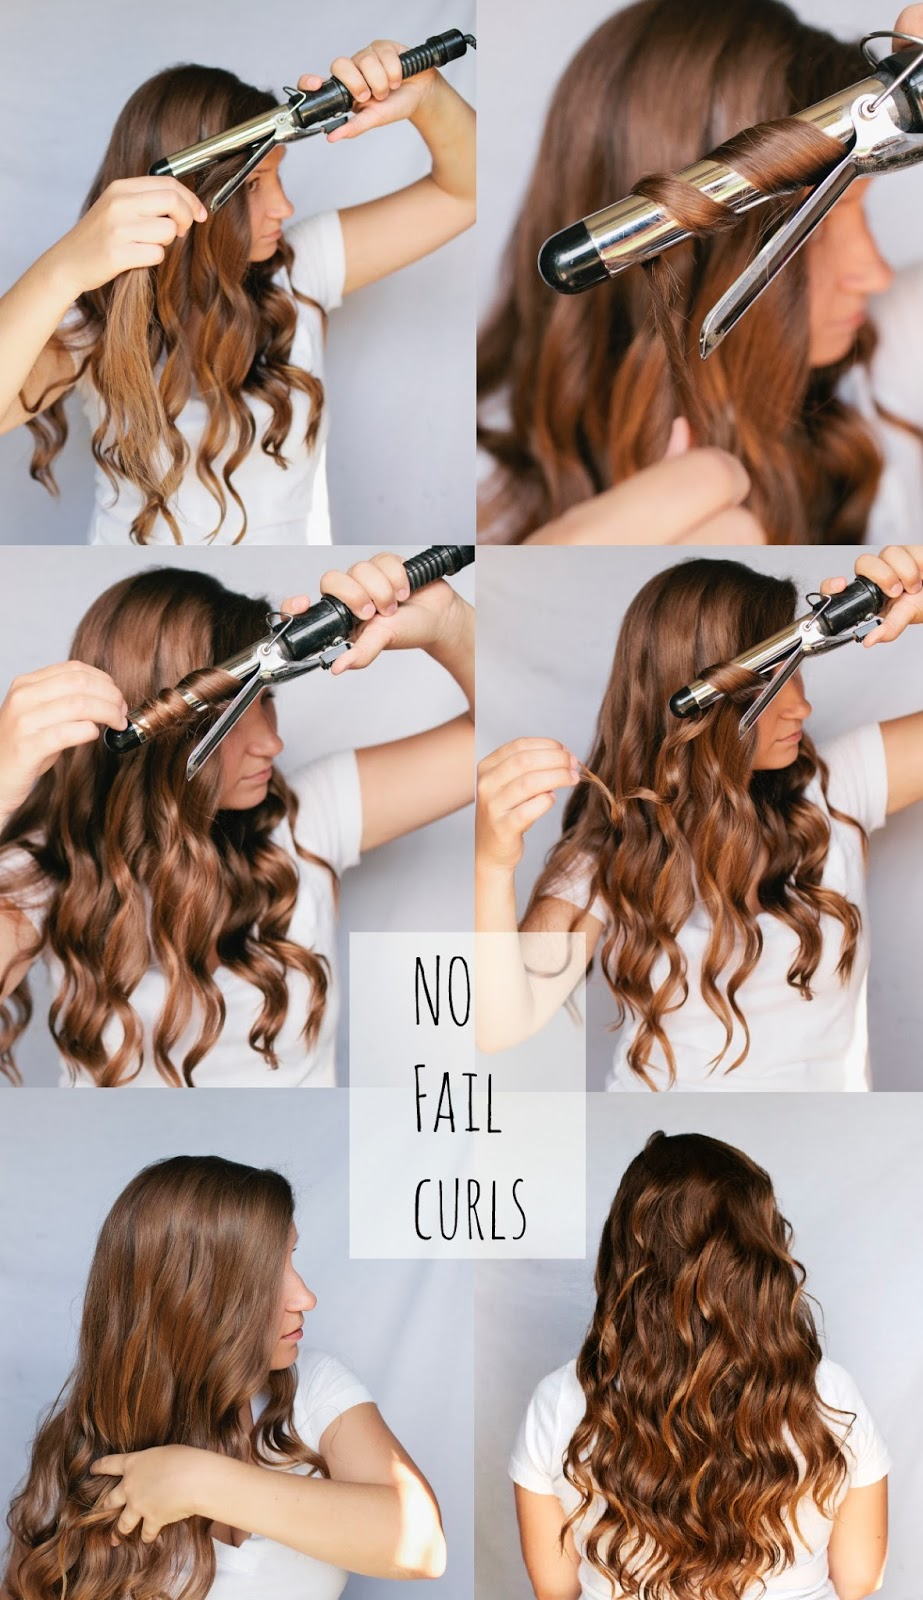 BEAUTY & THE BEARD: HAIR WEEK: NO FAIL CURLS